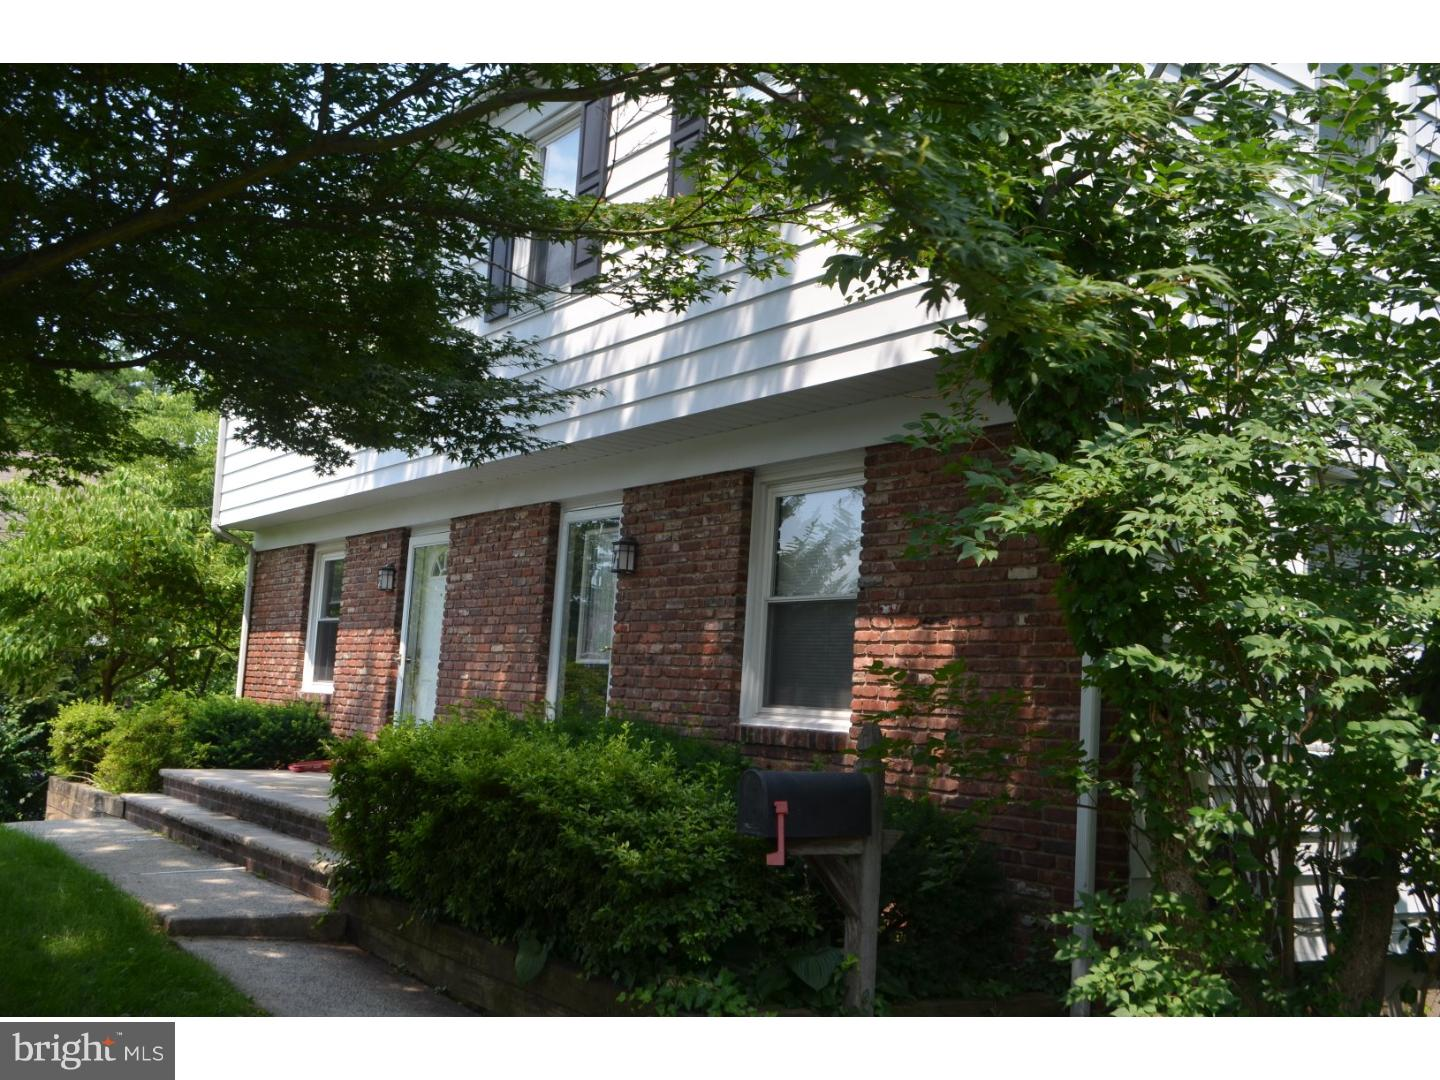 Property for Rent at 71 MAPLE Street Princeton, New Jersey 08542 United States